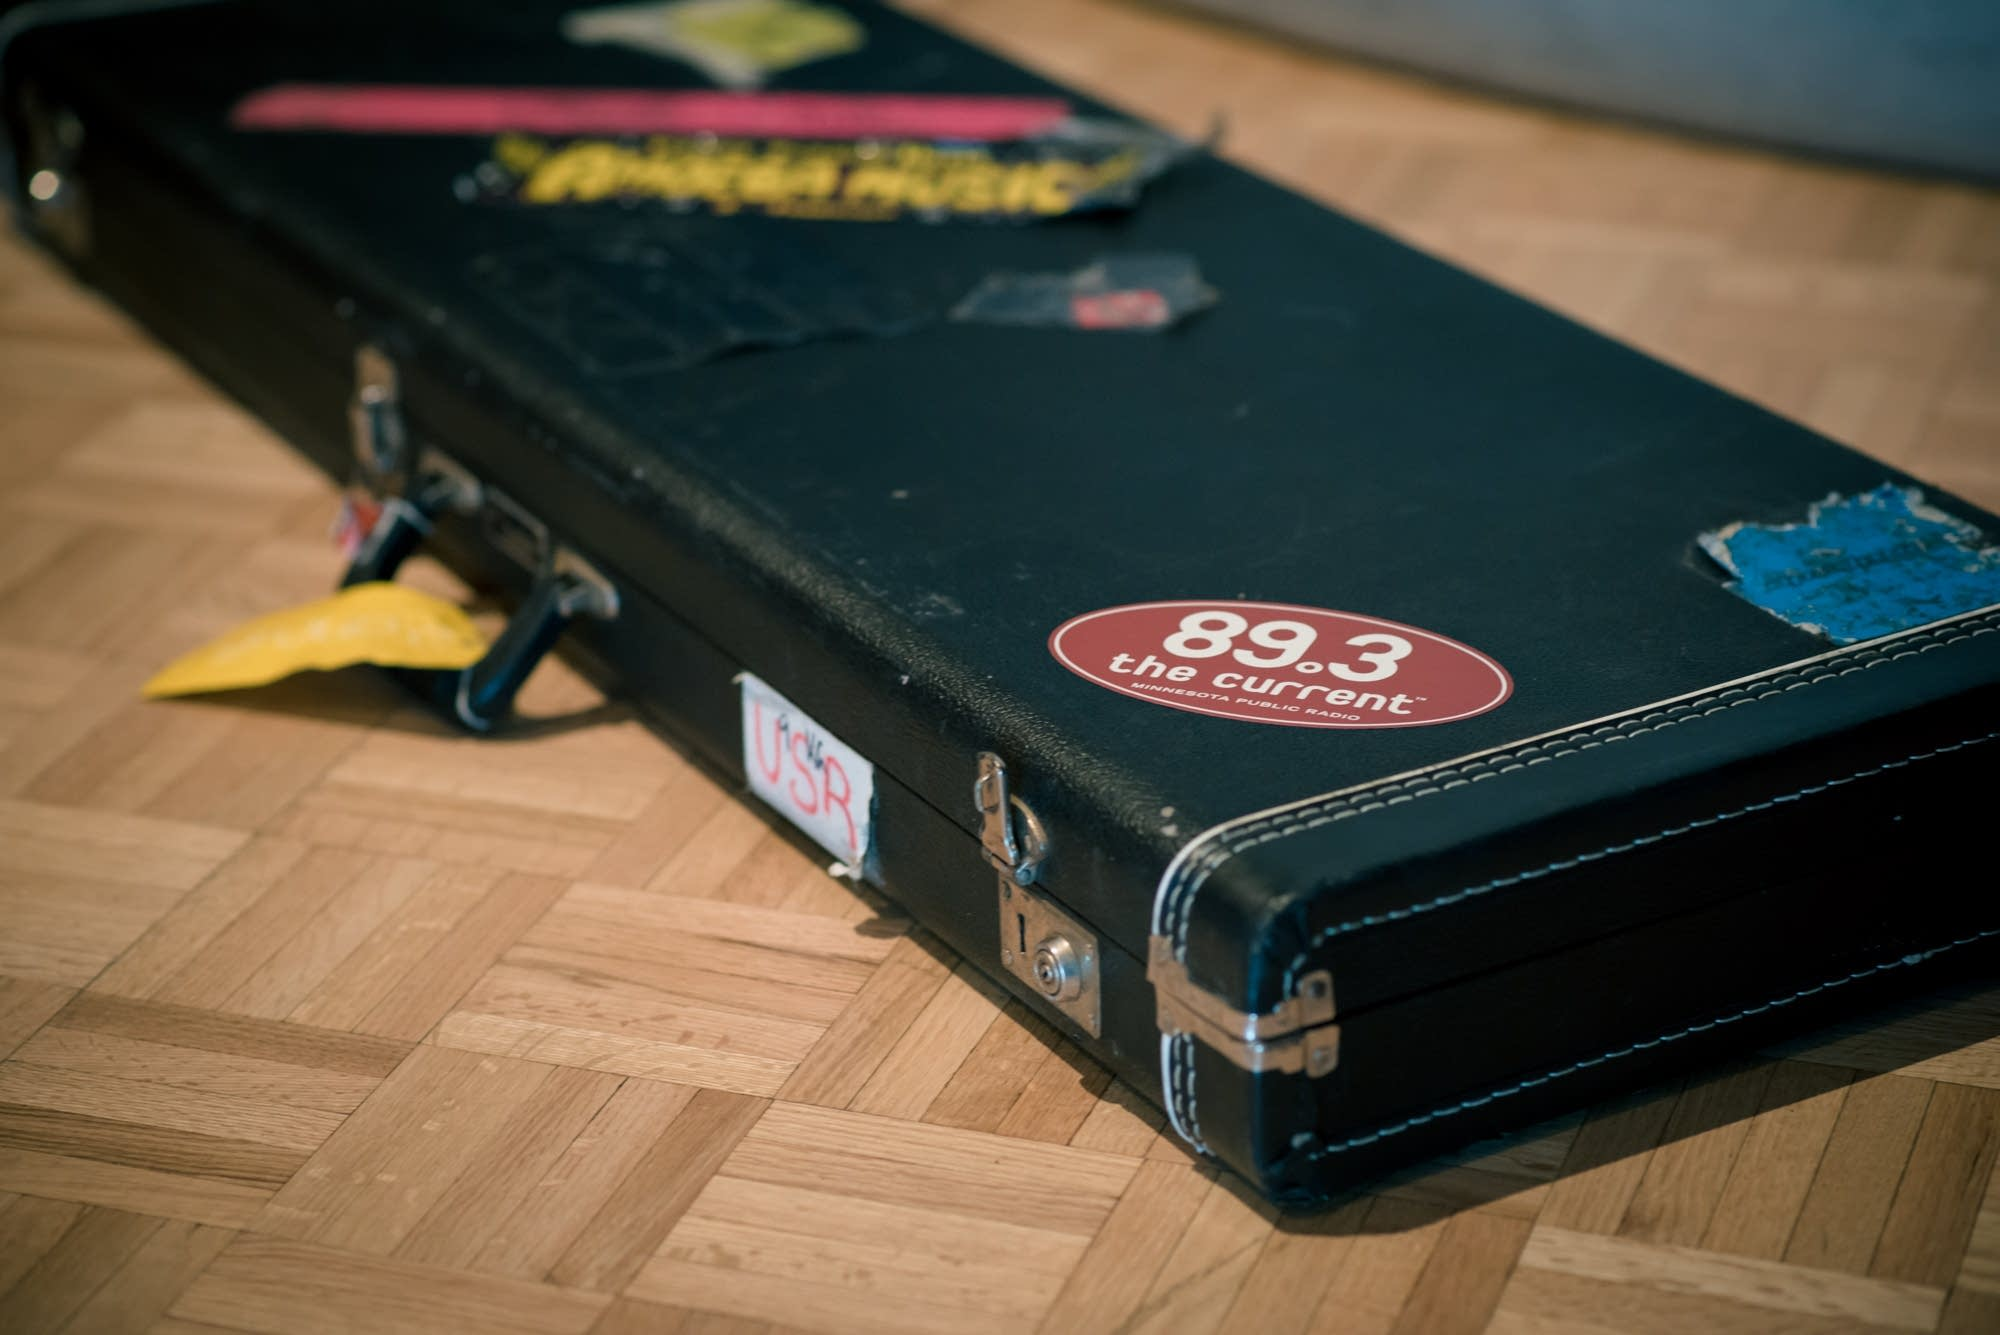 Bass case with a Current sticker